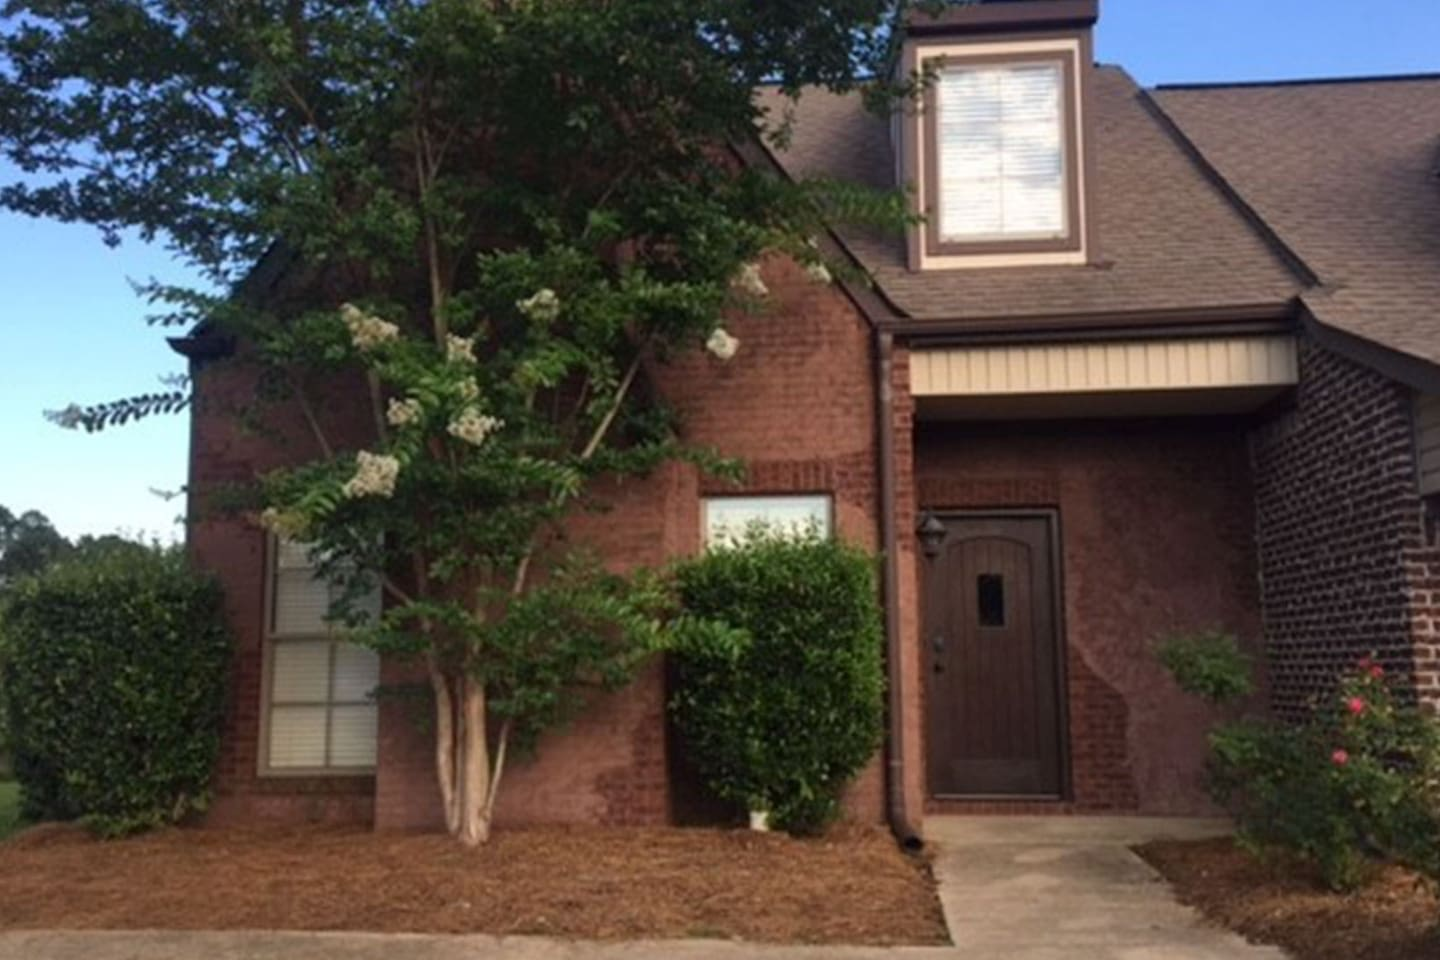 Townhome has a quiet setting on cul-de-sac in a professional neighborhood with convenient parking